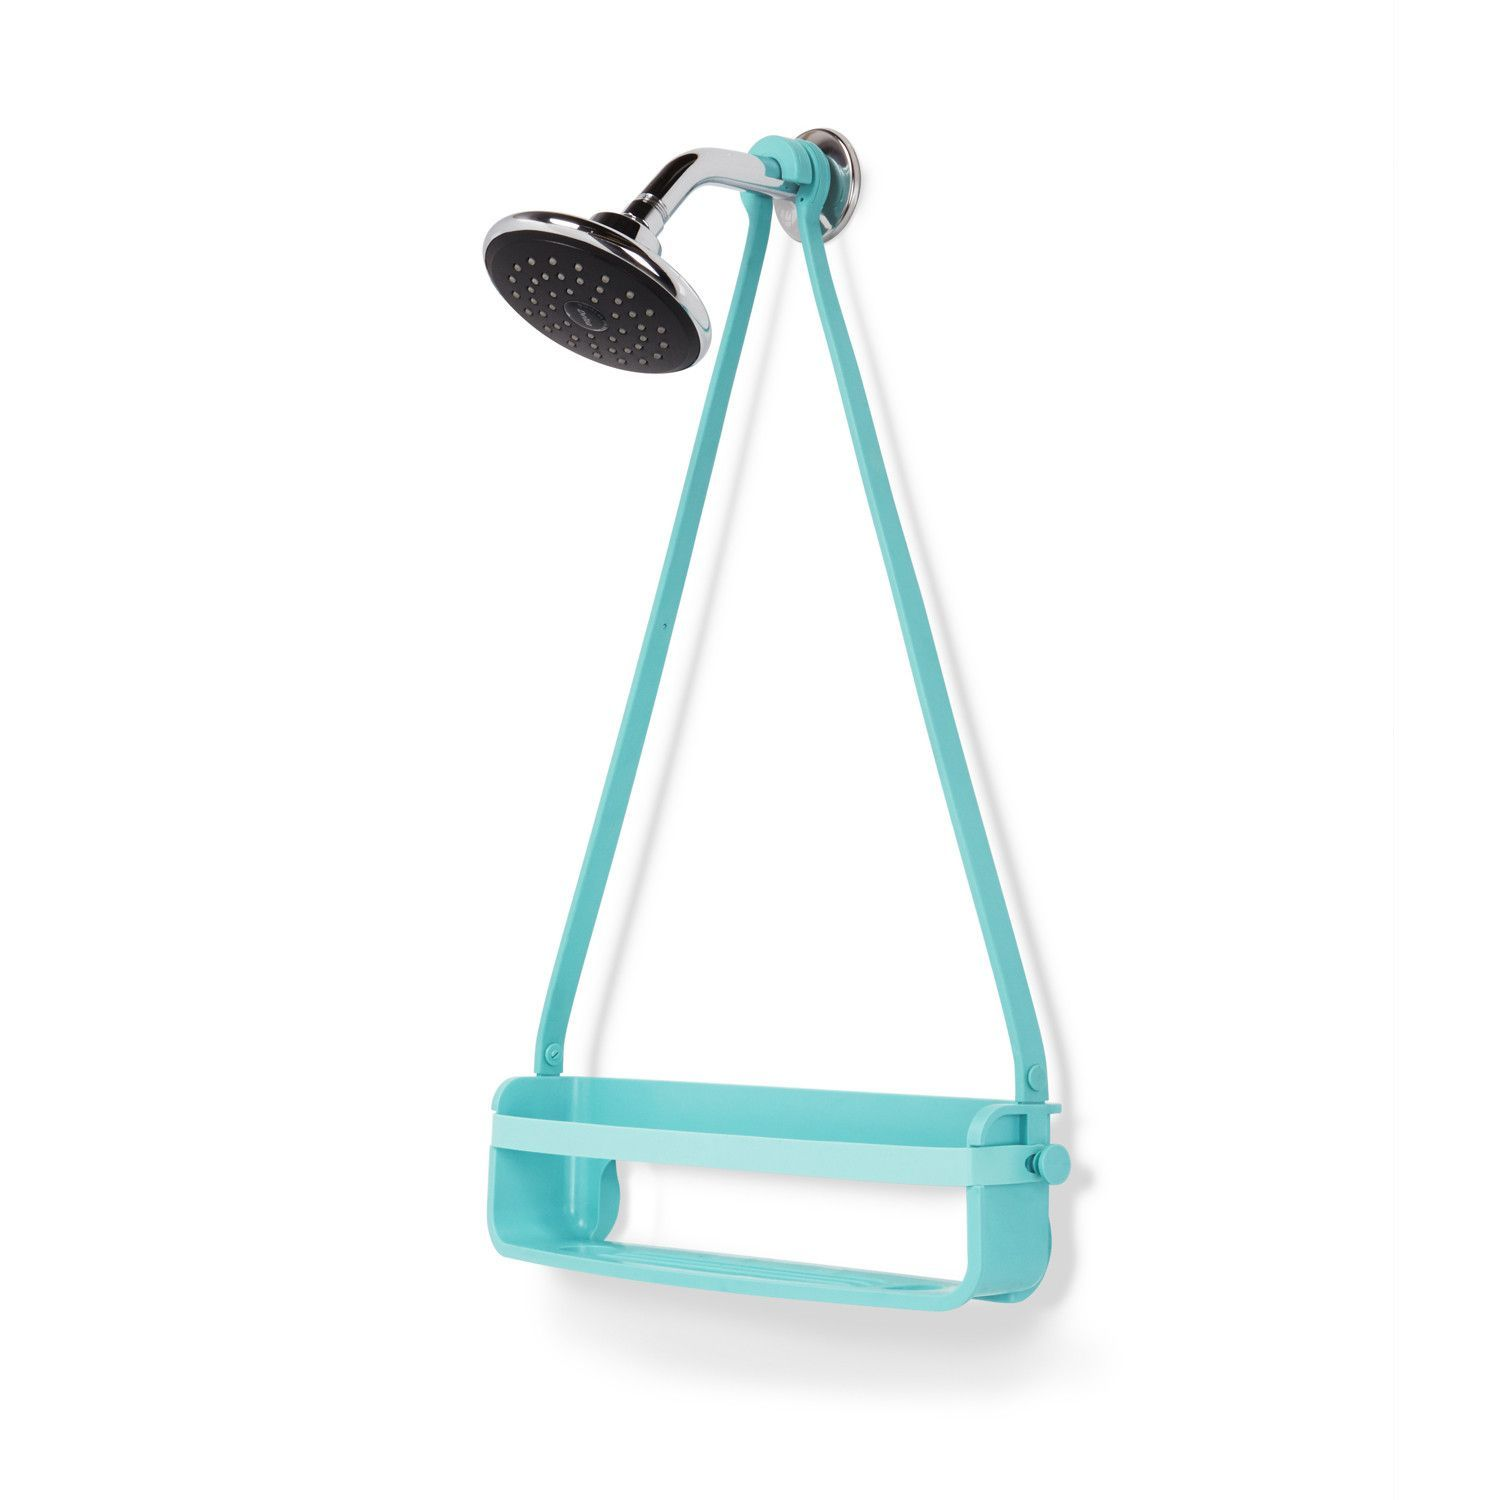 Flex Rubber/Plastic Hanging Shower Caddy | Products | Pinterest ...